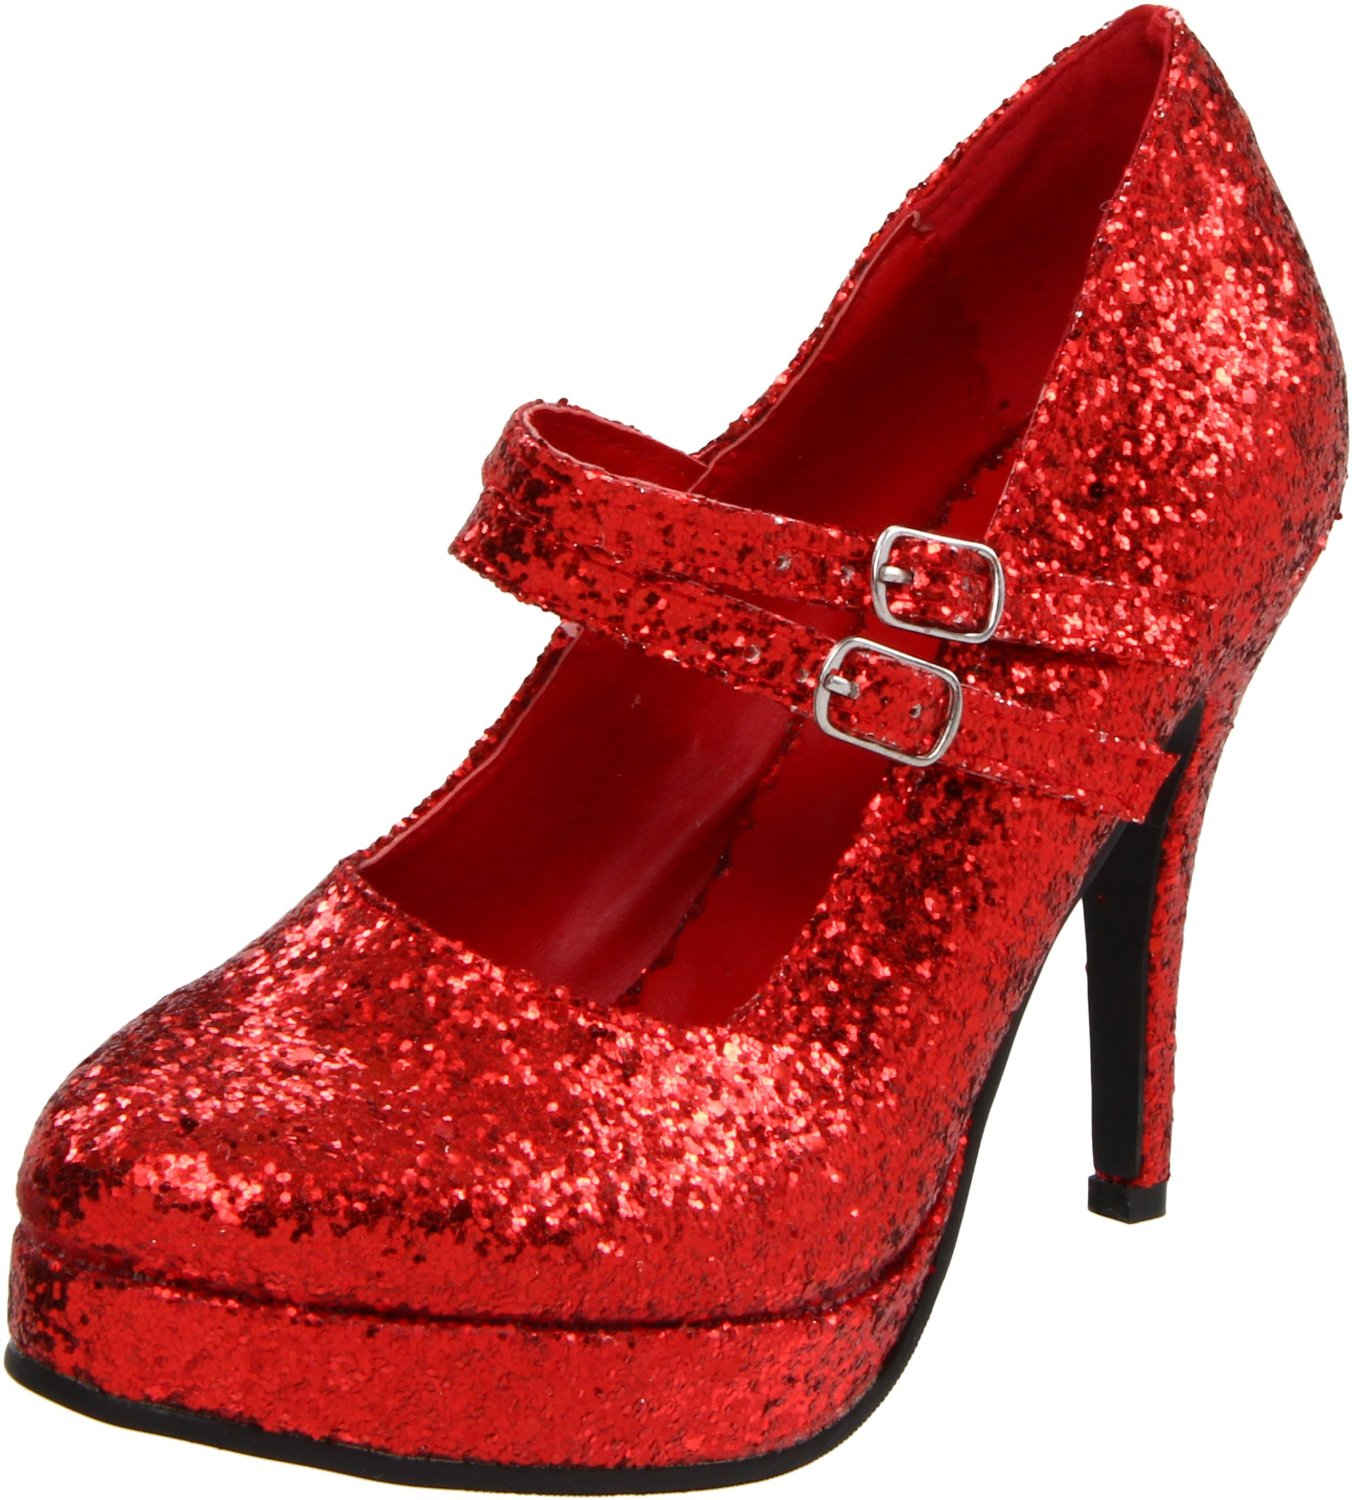 Prom Dresses 2018  Red glitter shoes 2018   2019 - High heel prom shoes e14669a7c